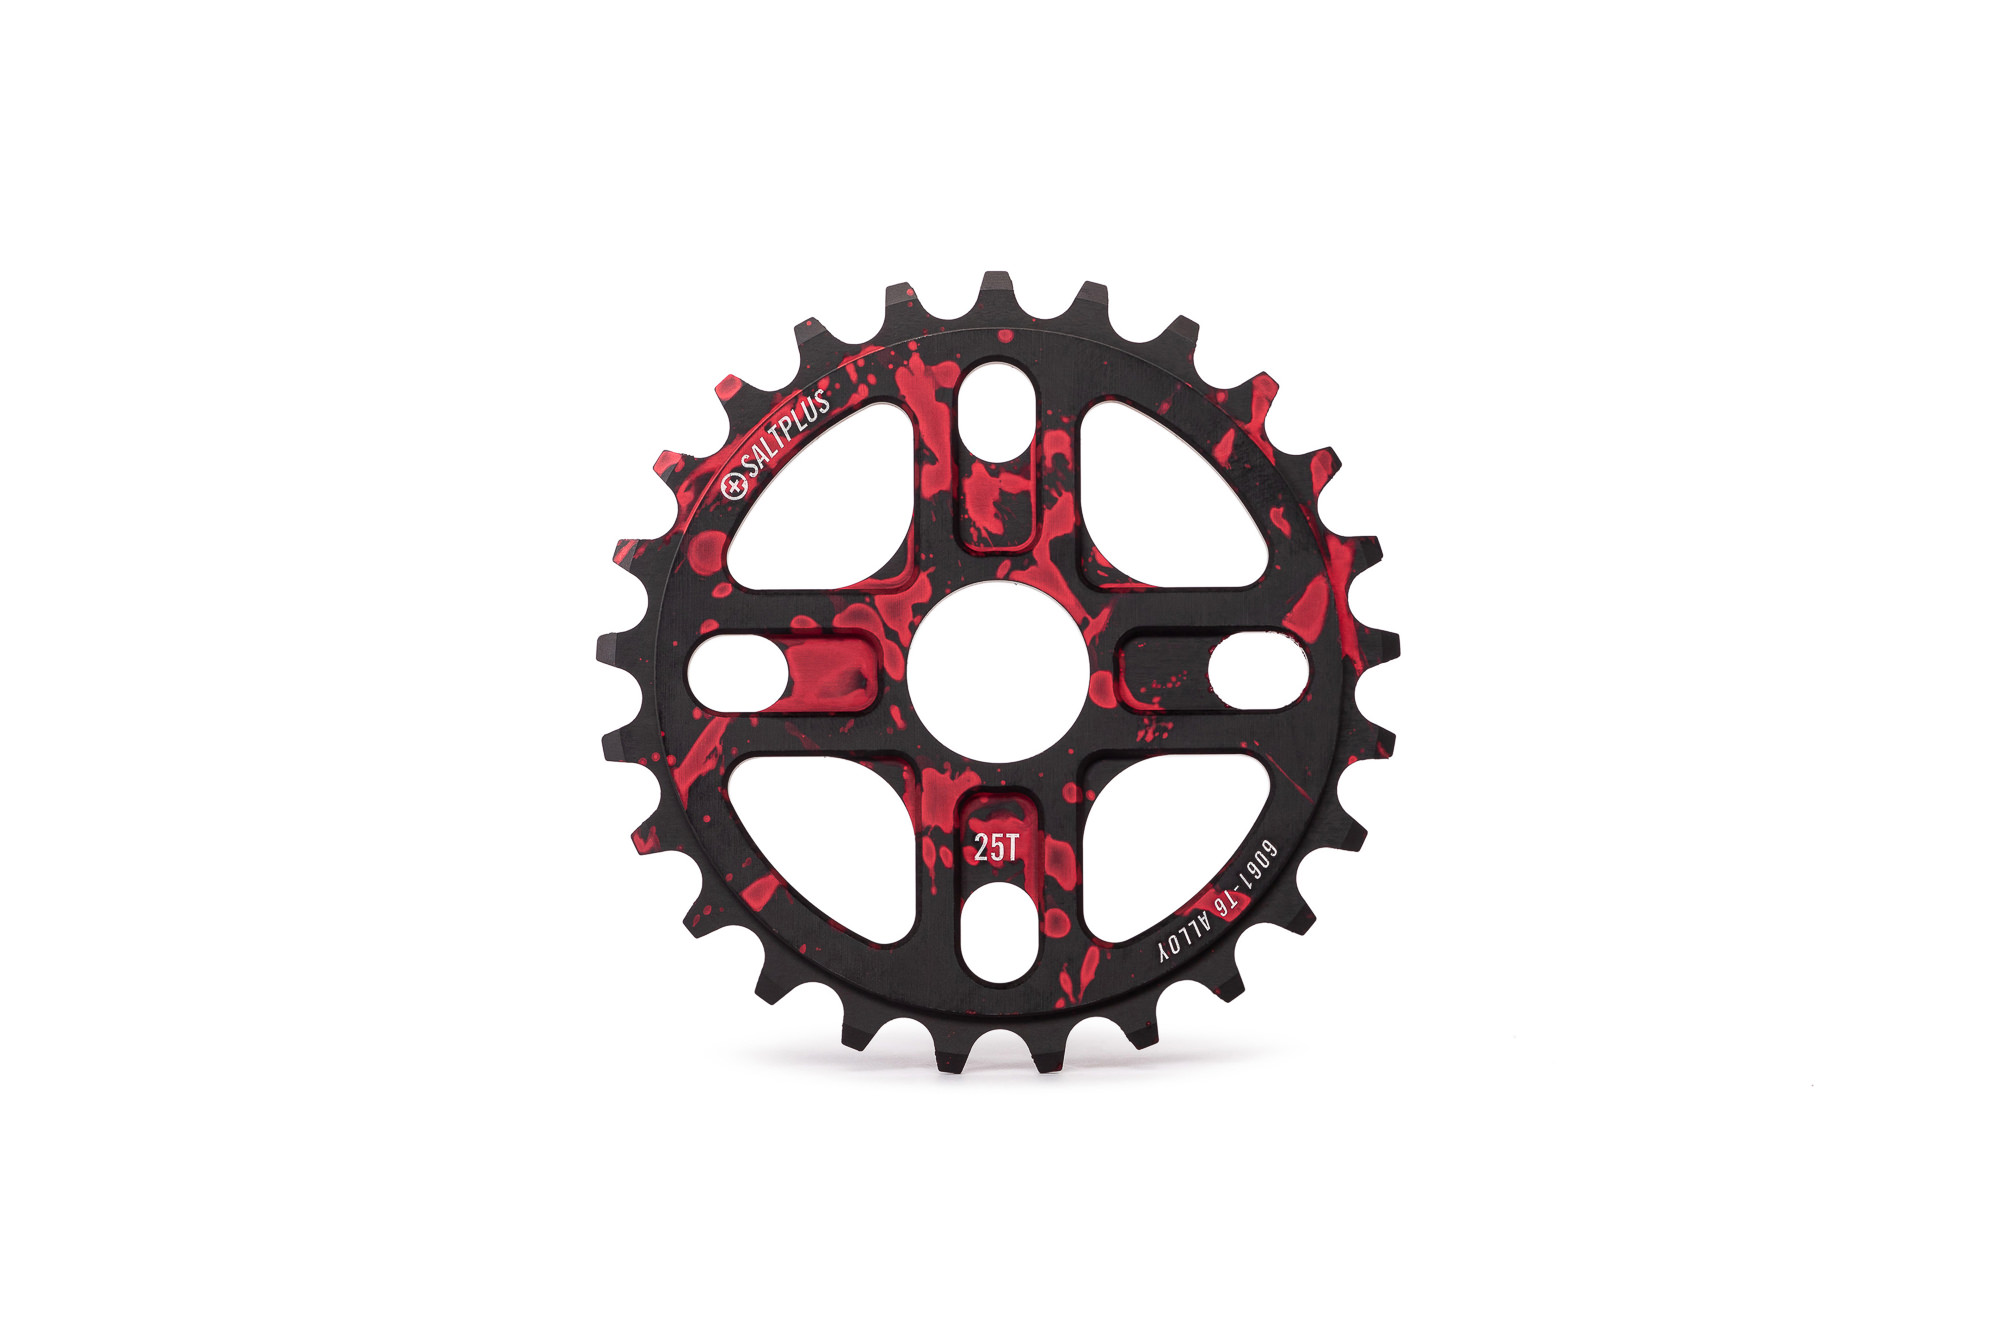 SaltPlus_Manta_sprocket_25t_black_red_splatter_01